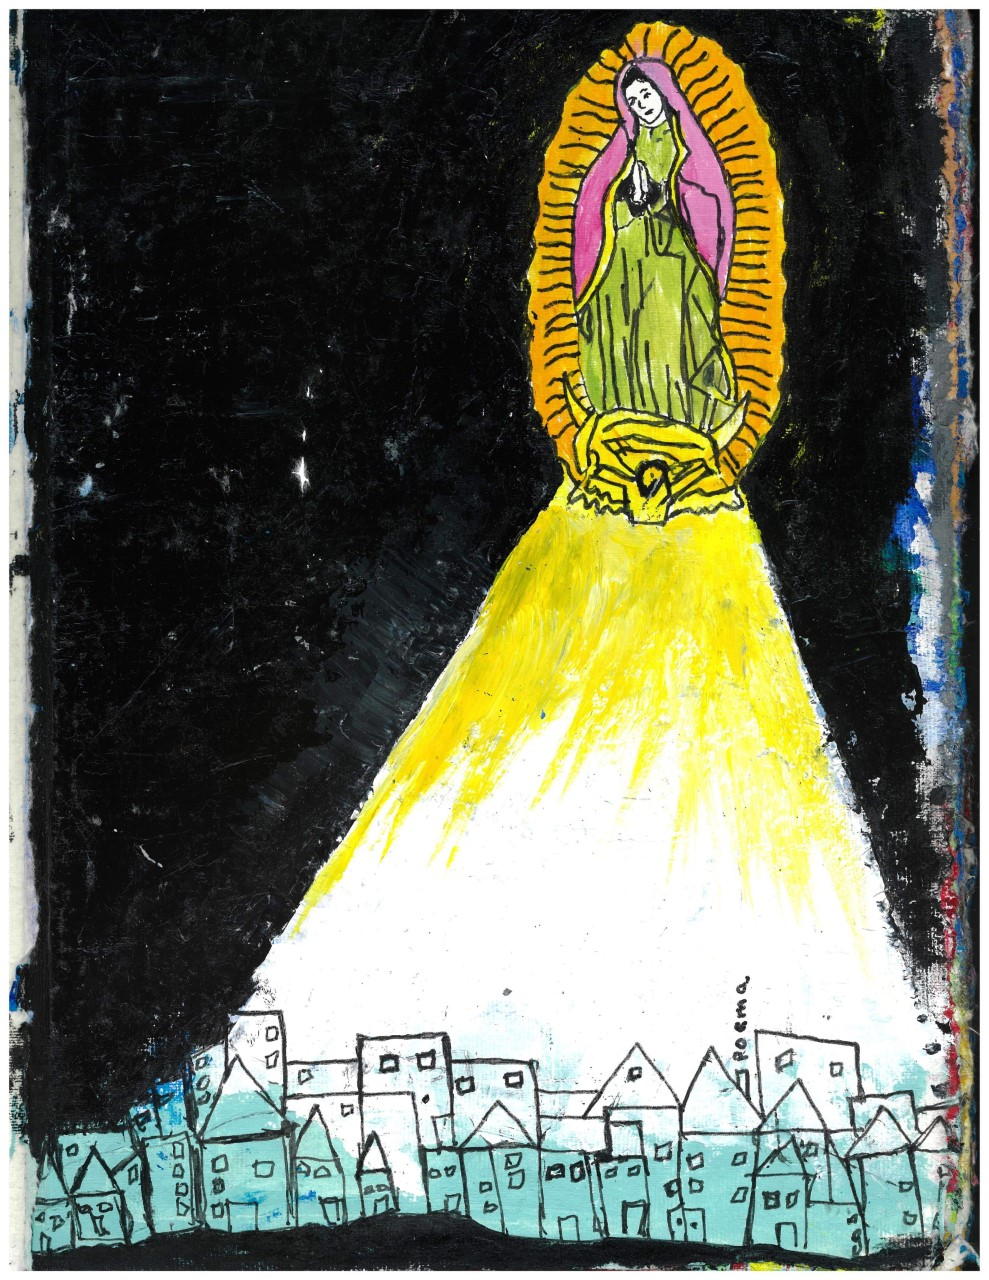 rough painting of the Virgin Mary above sketched houses